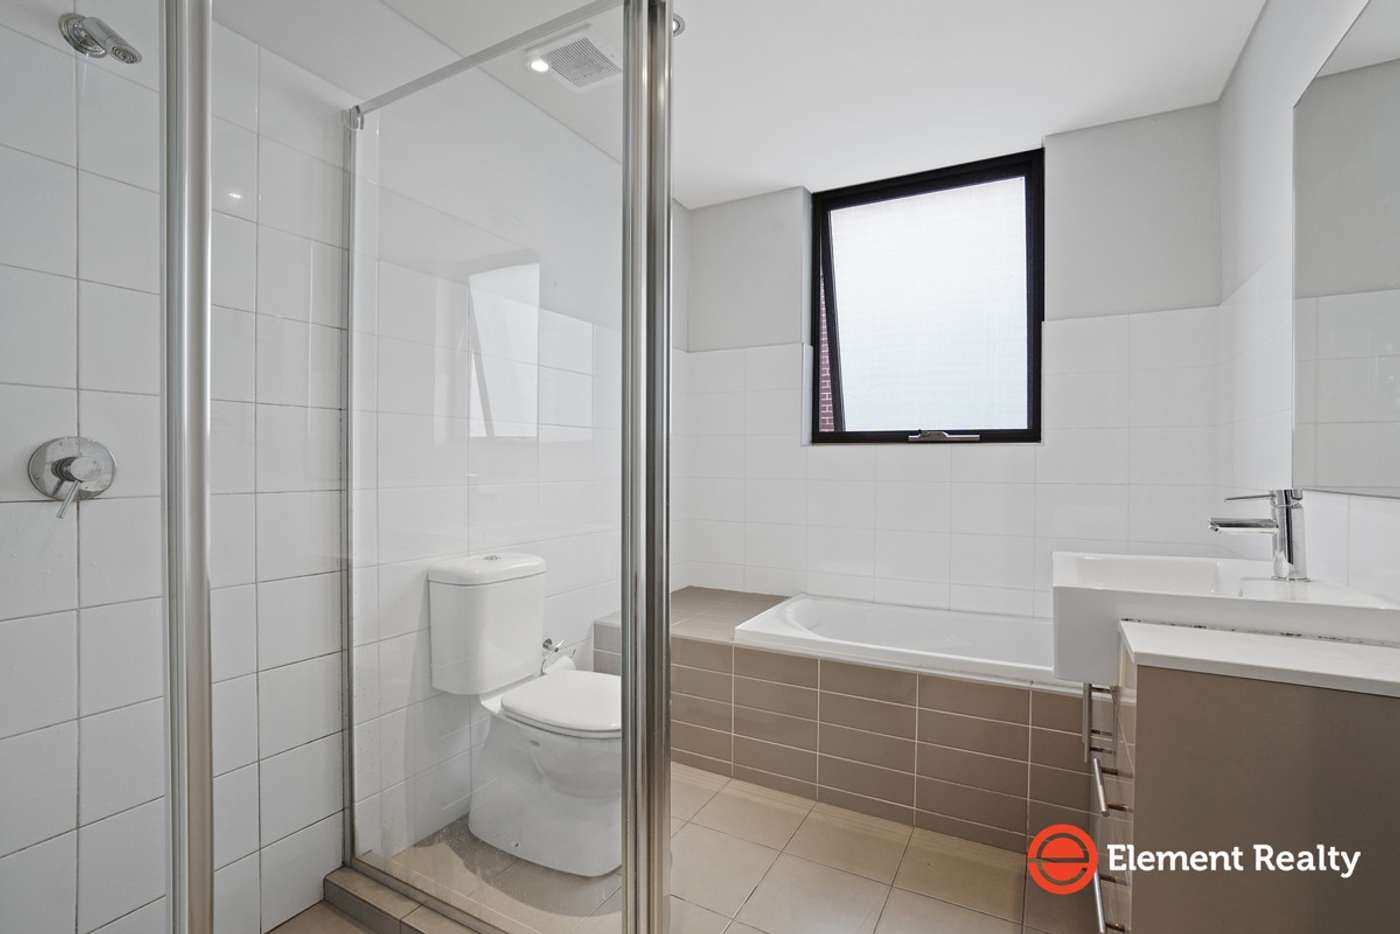 Sixth view of Homely apartment listing, 13/121-127 Railway Parade, Granville NSW 2142